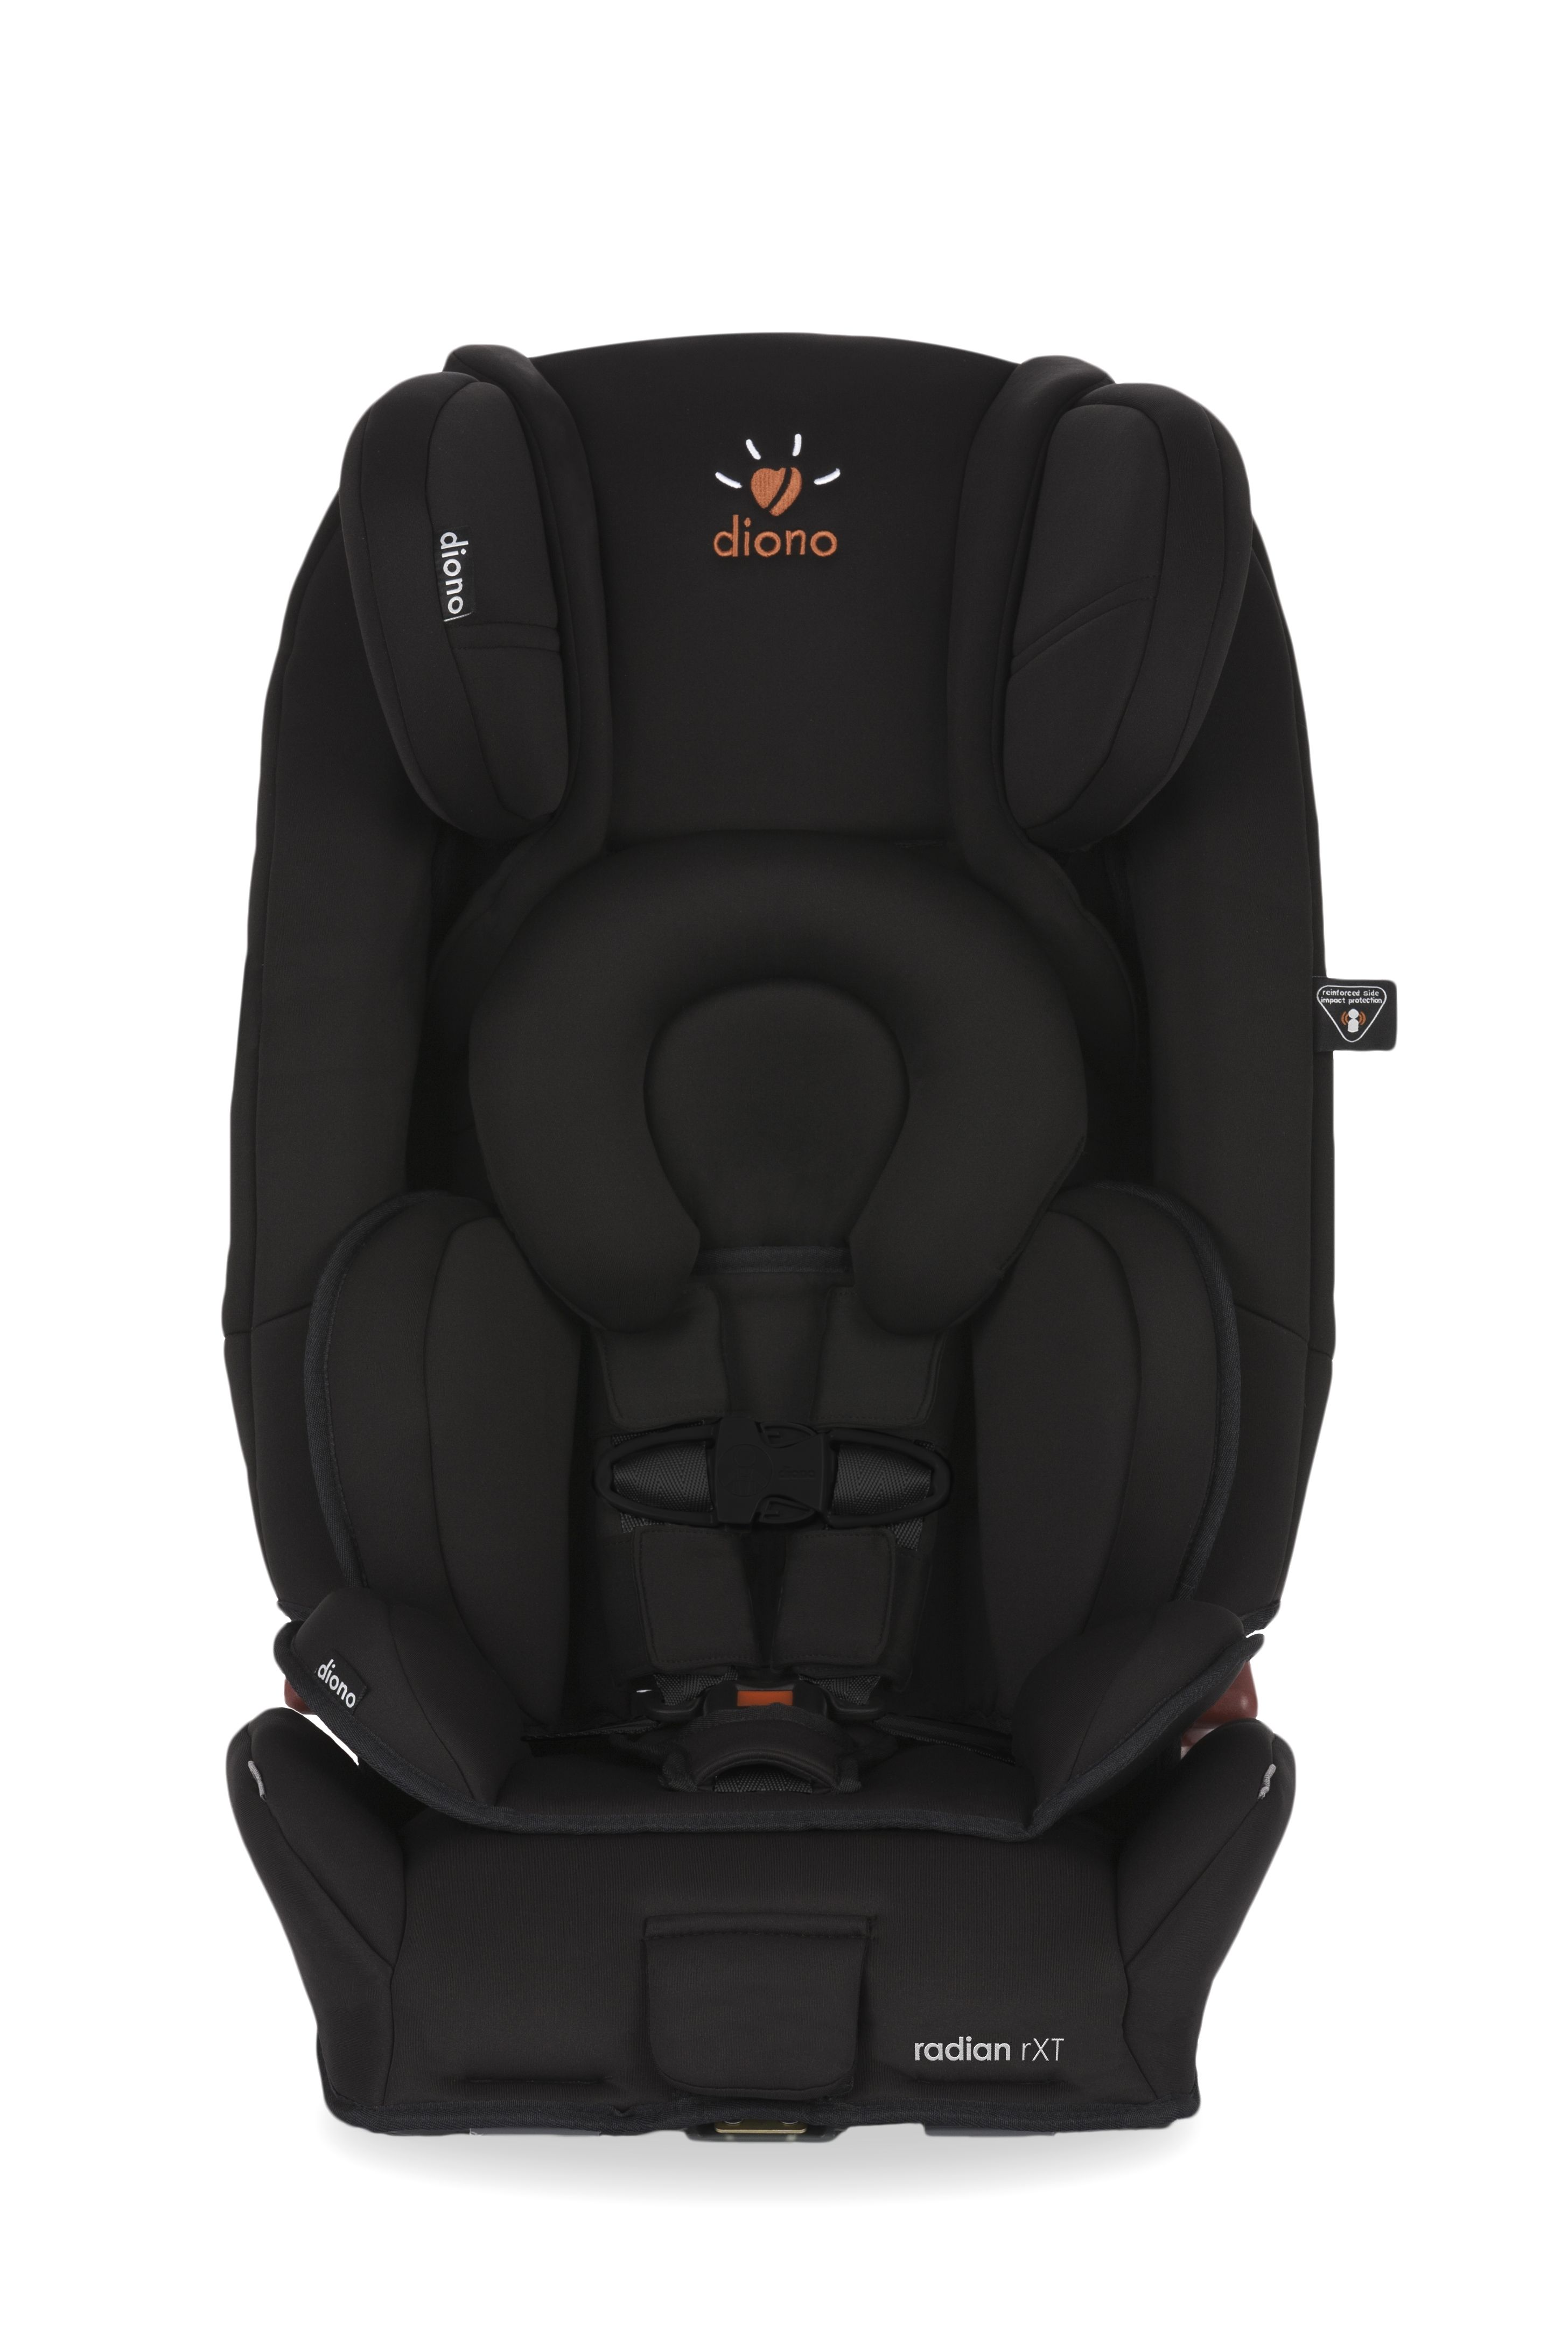 Evenflo Car Seats Baby The Best